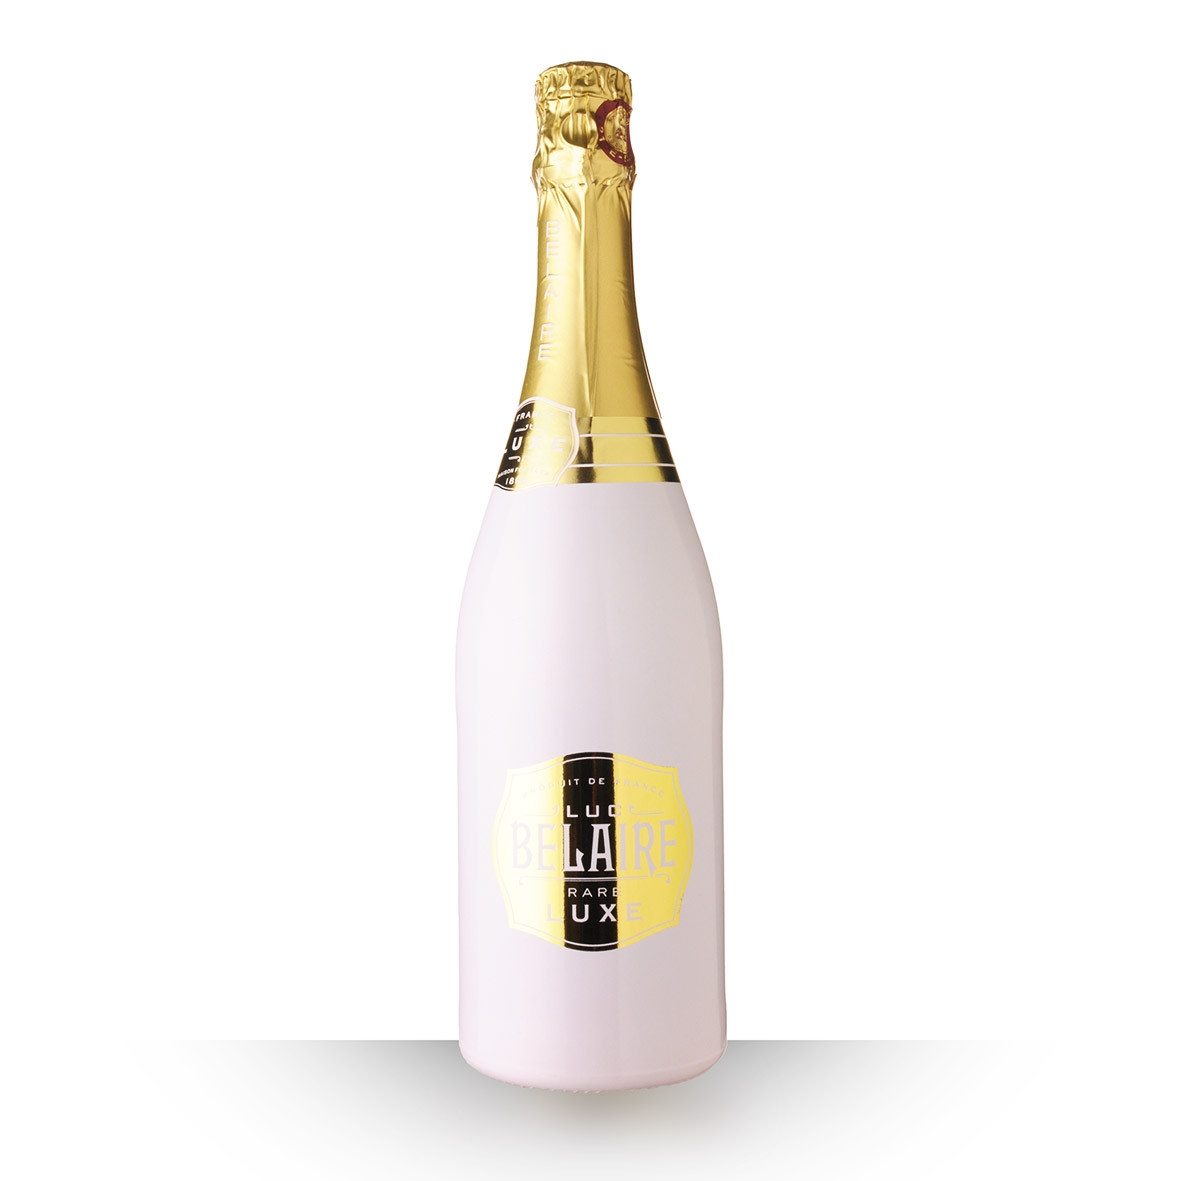 Luc Belaire Luxe Blanc 75cl www.odyssee-vins.com